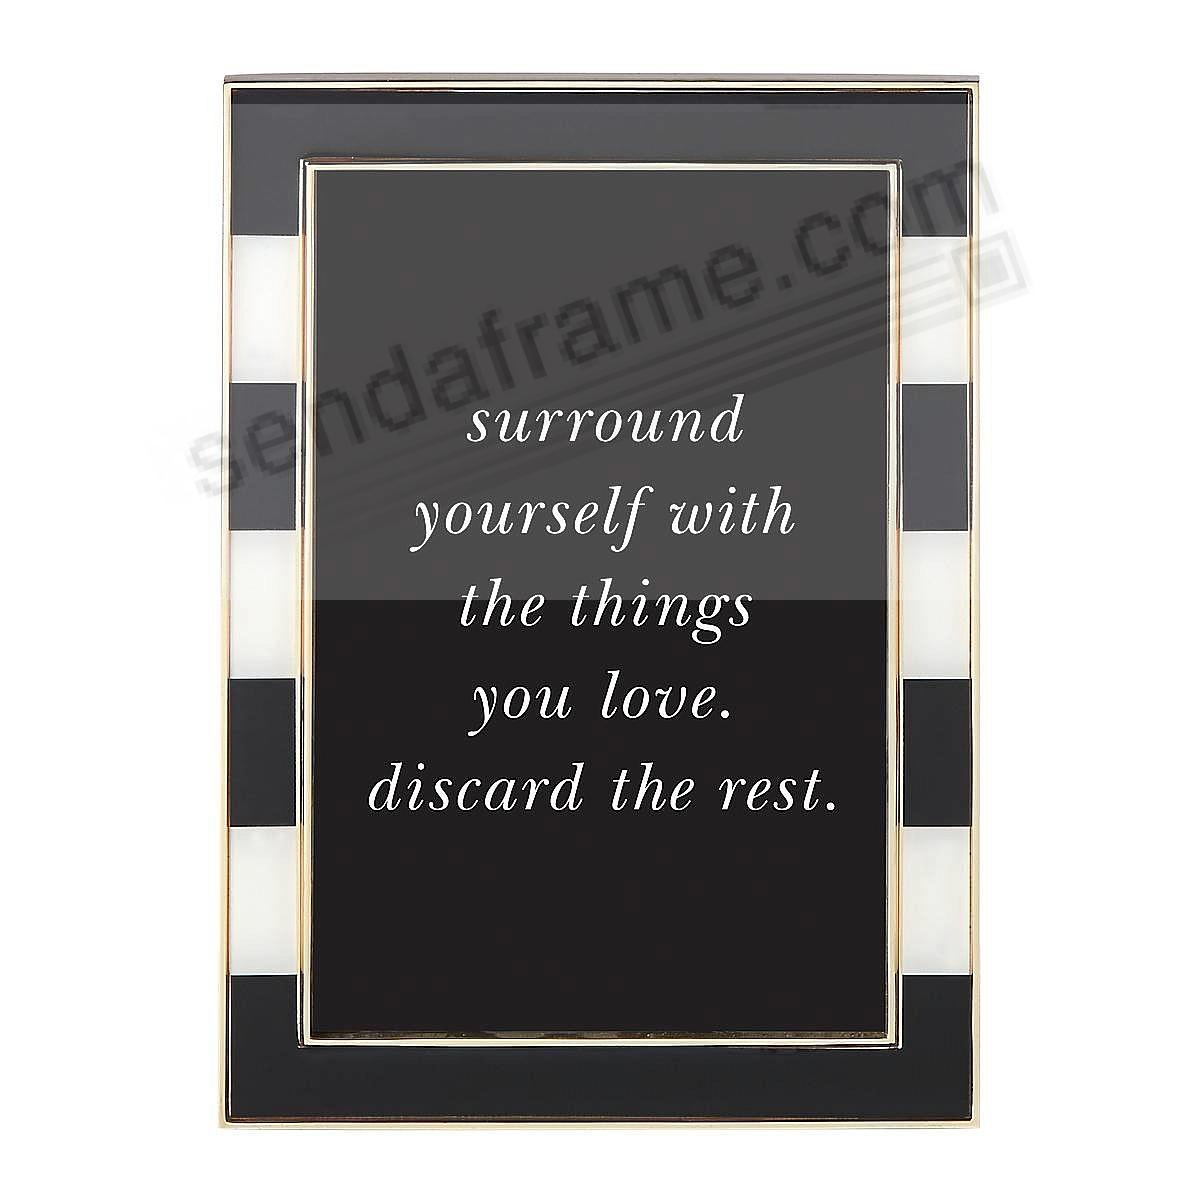 EVERDONE LANE frame for 4x6 prints by kate spade new york®